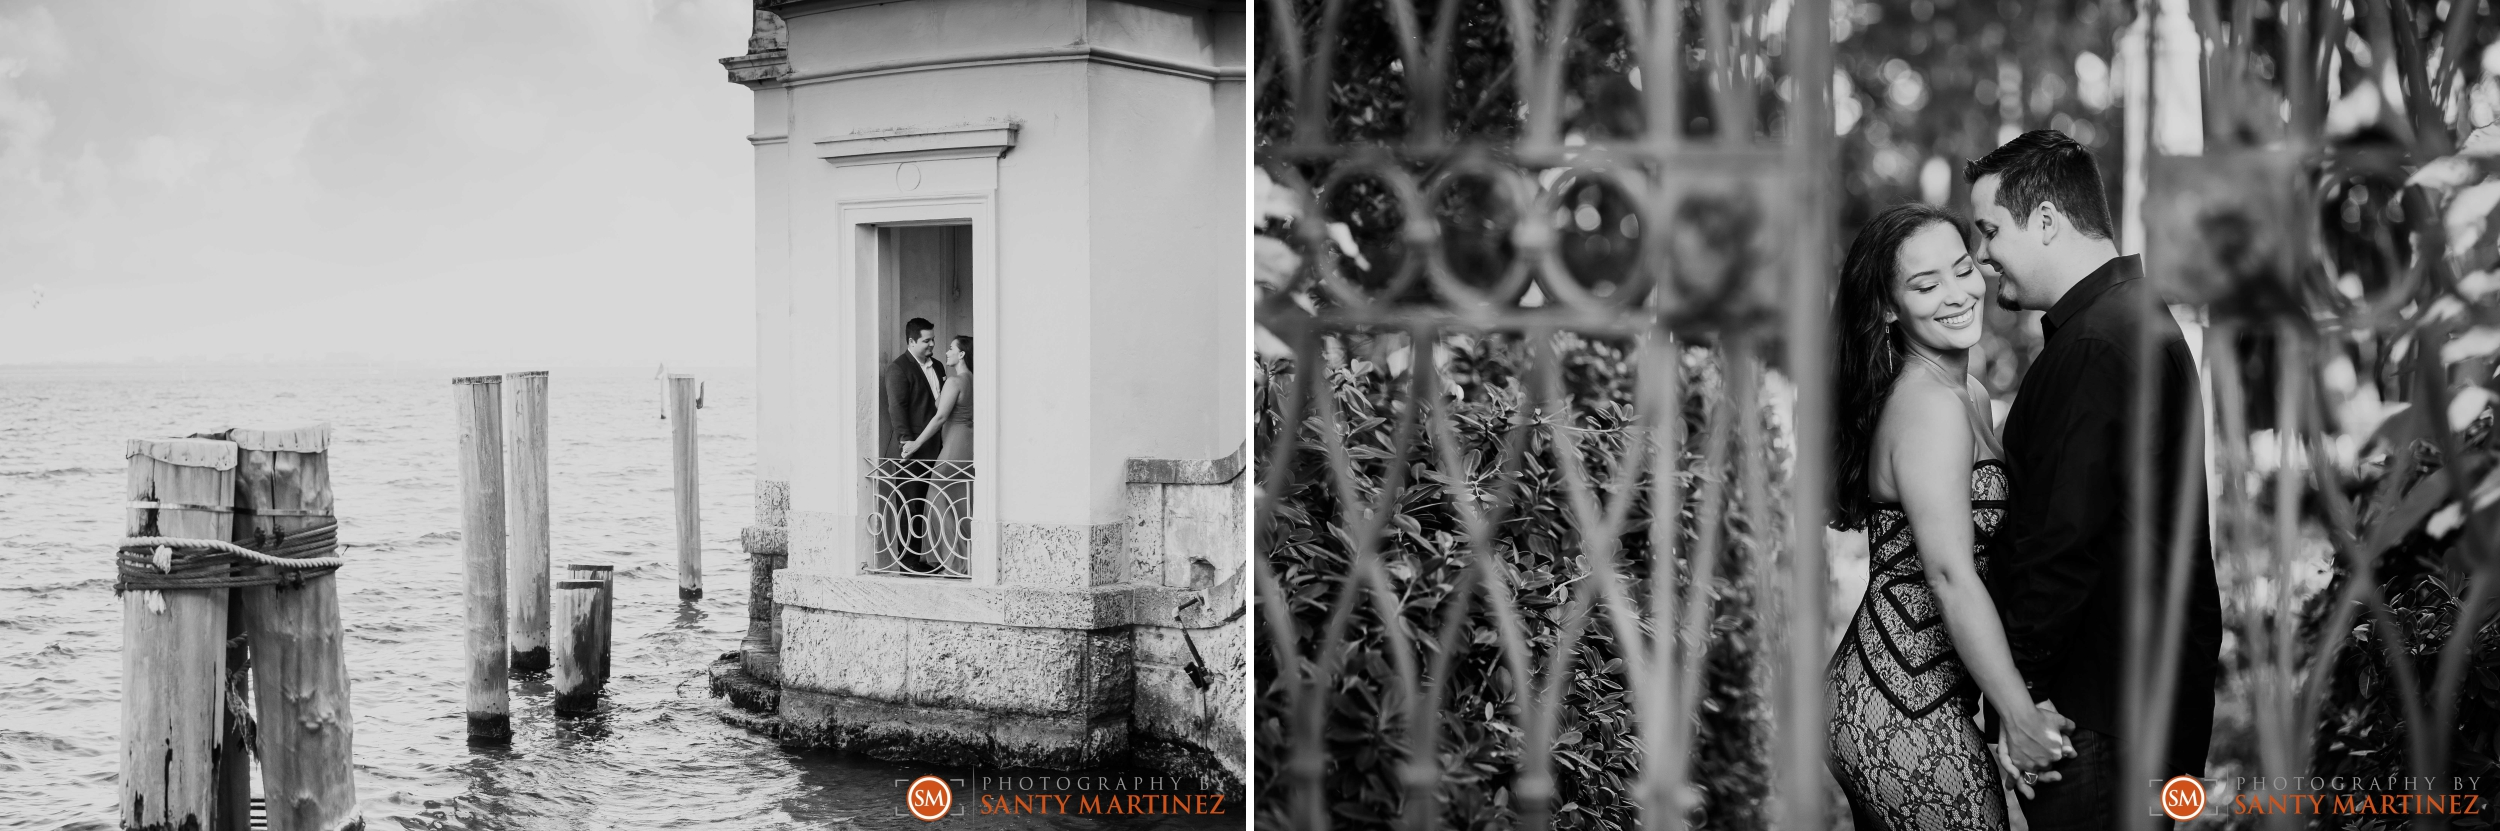 Vizcaya Engagement Session - Miami - Photography by Santy Martinez 5.jpg